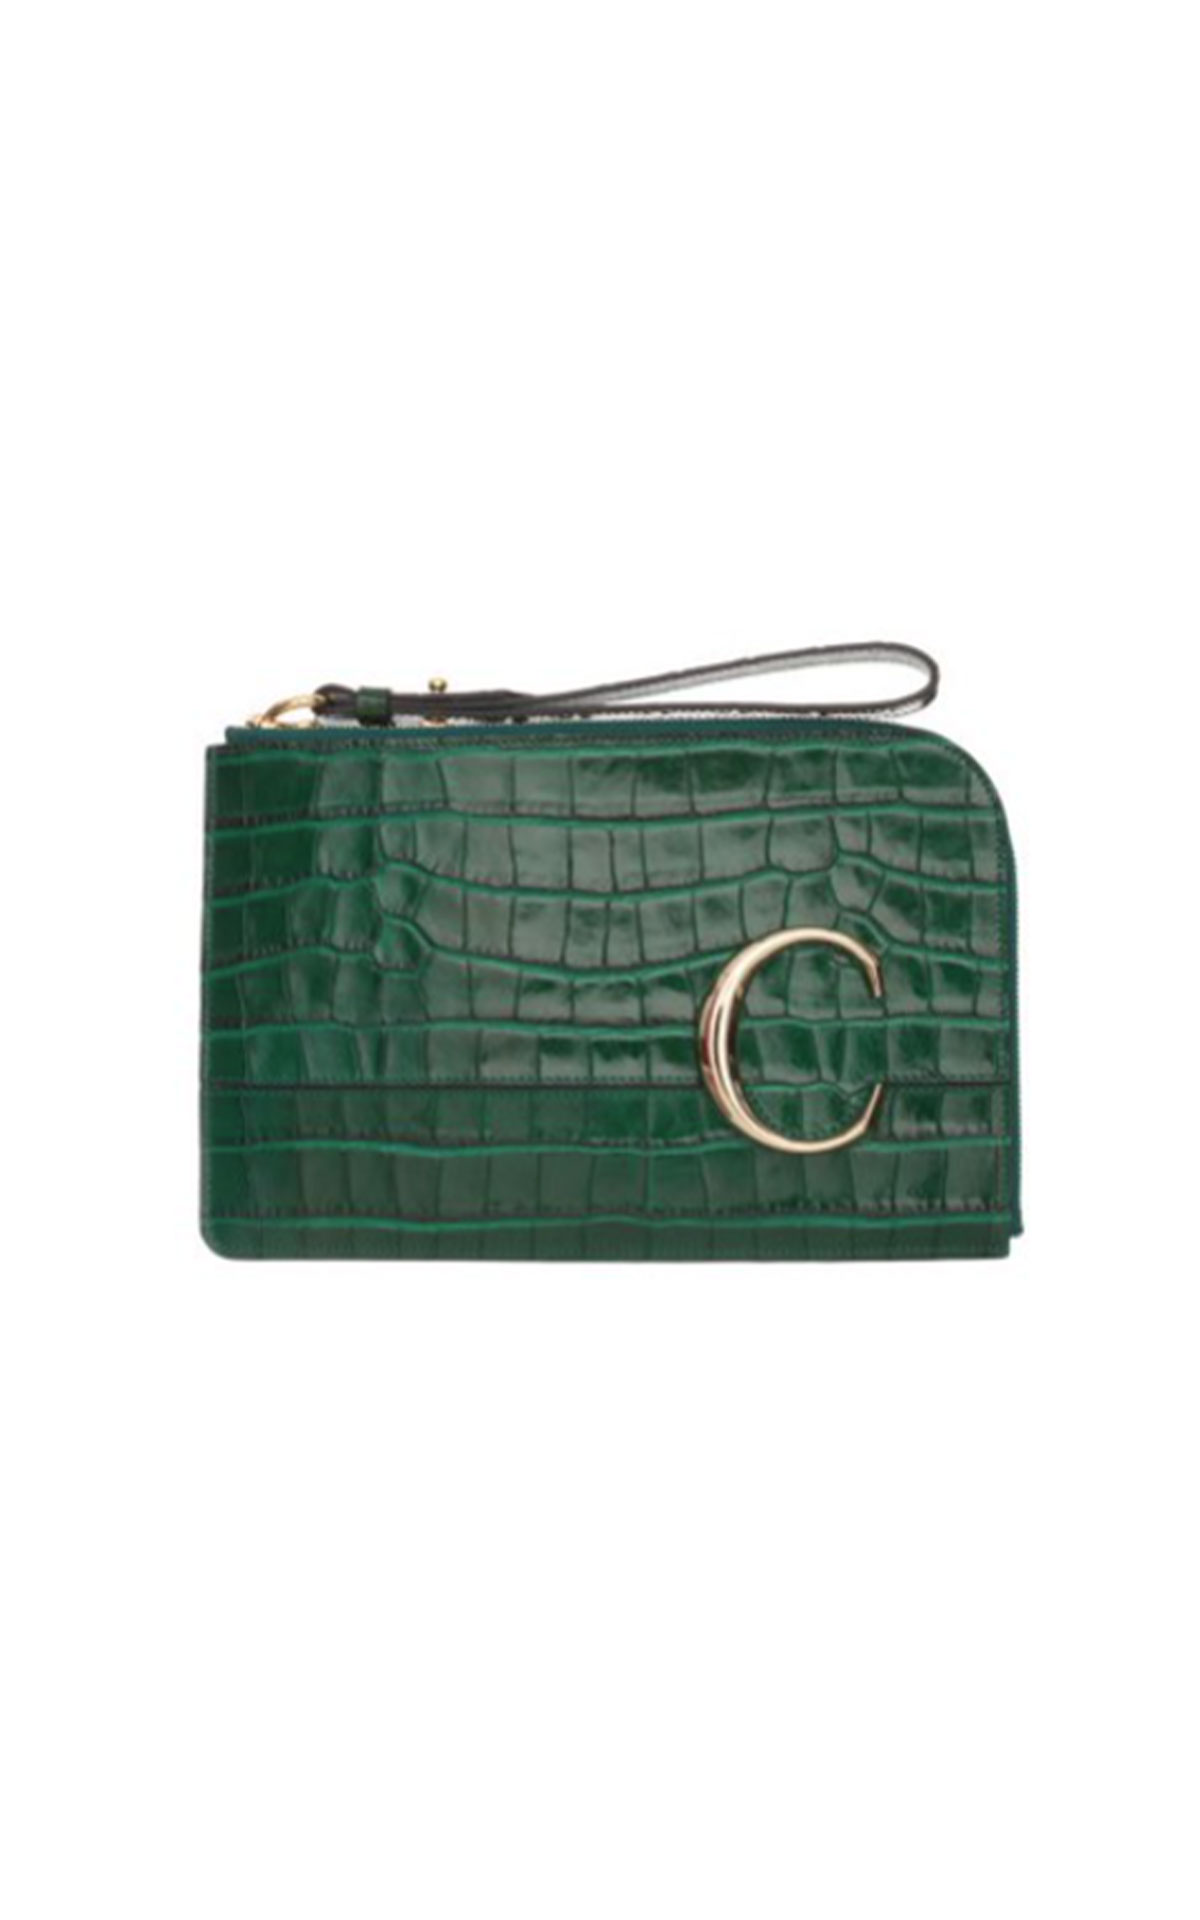 Chloe C pouch woody green from Bicester Village